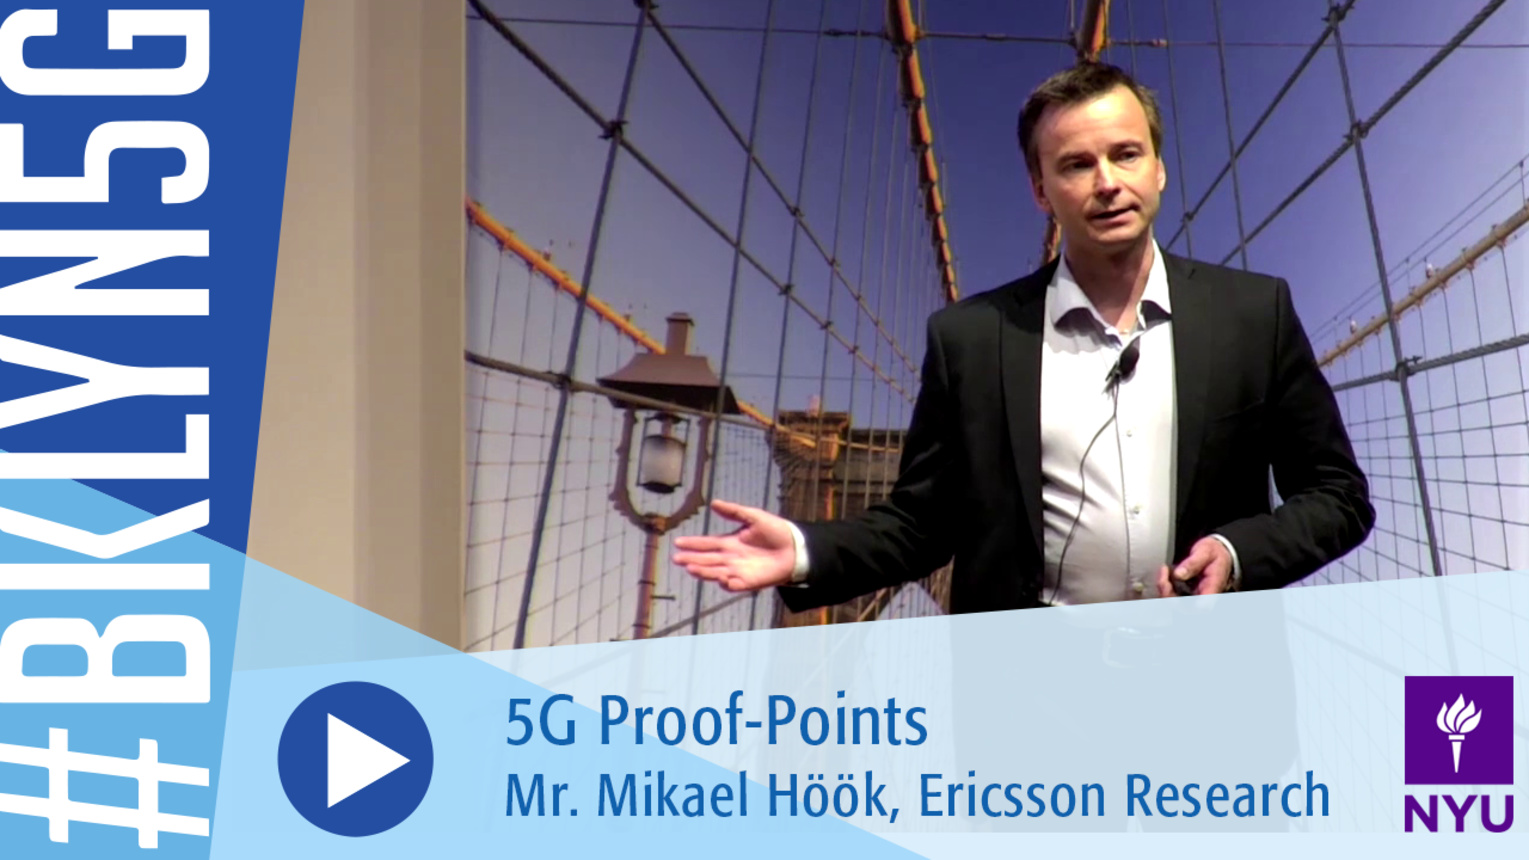 Brooklyn 5G 2016: Mikael Hook on 5G Proof-Points